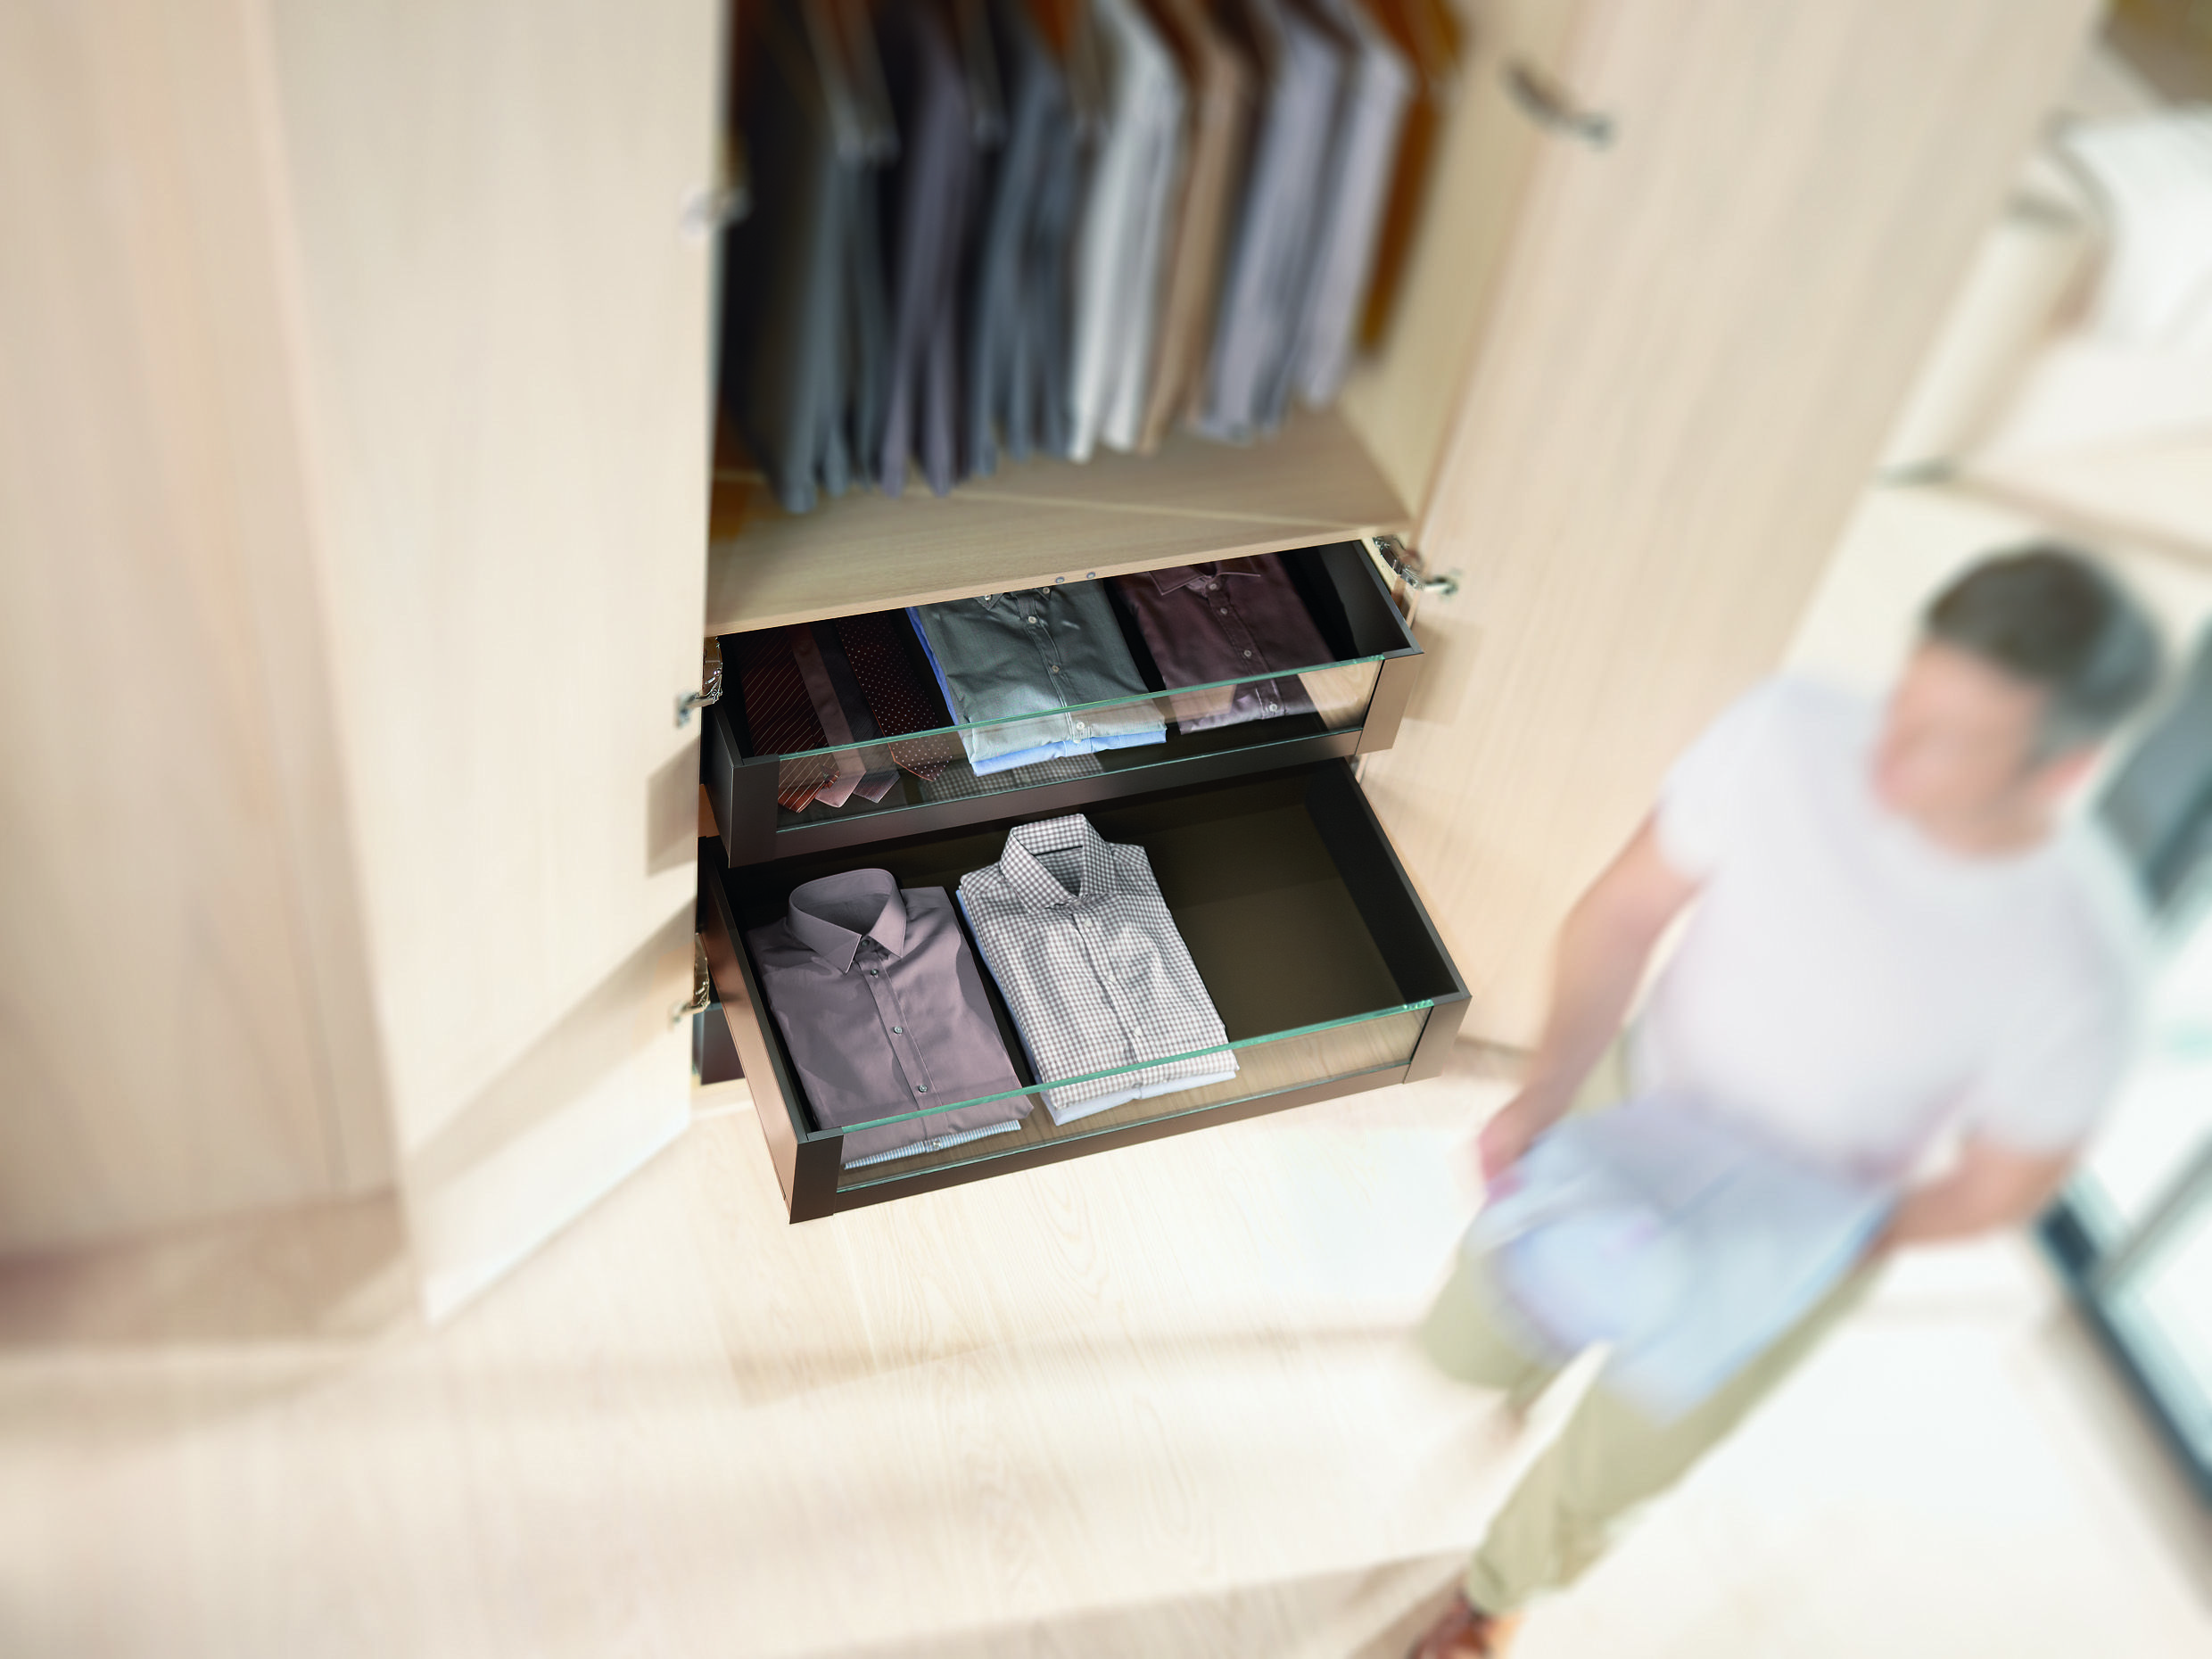 Blum for Bedrooms! Wardrobe drawer storage solutions available at ...